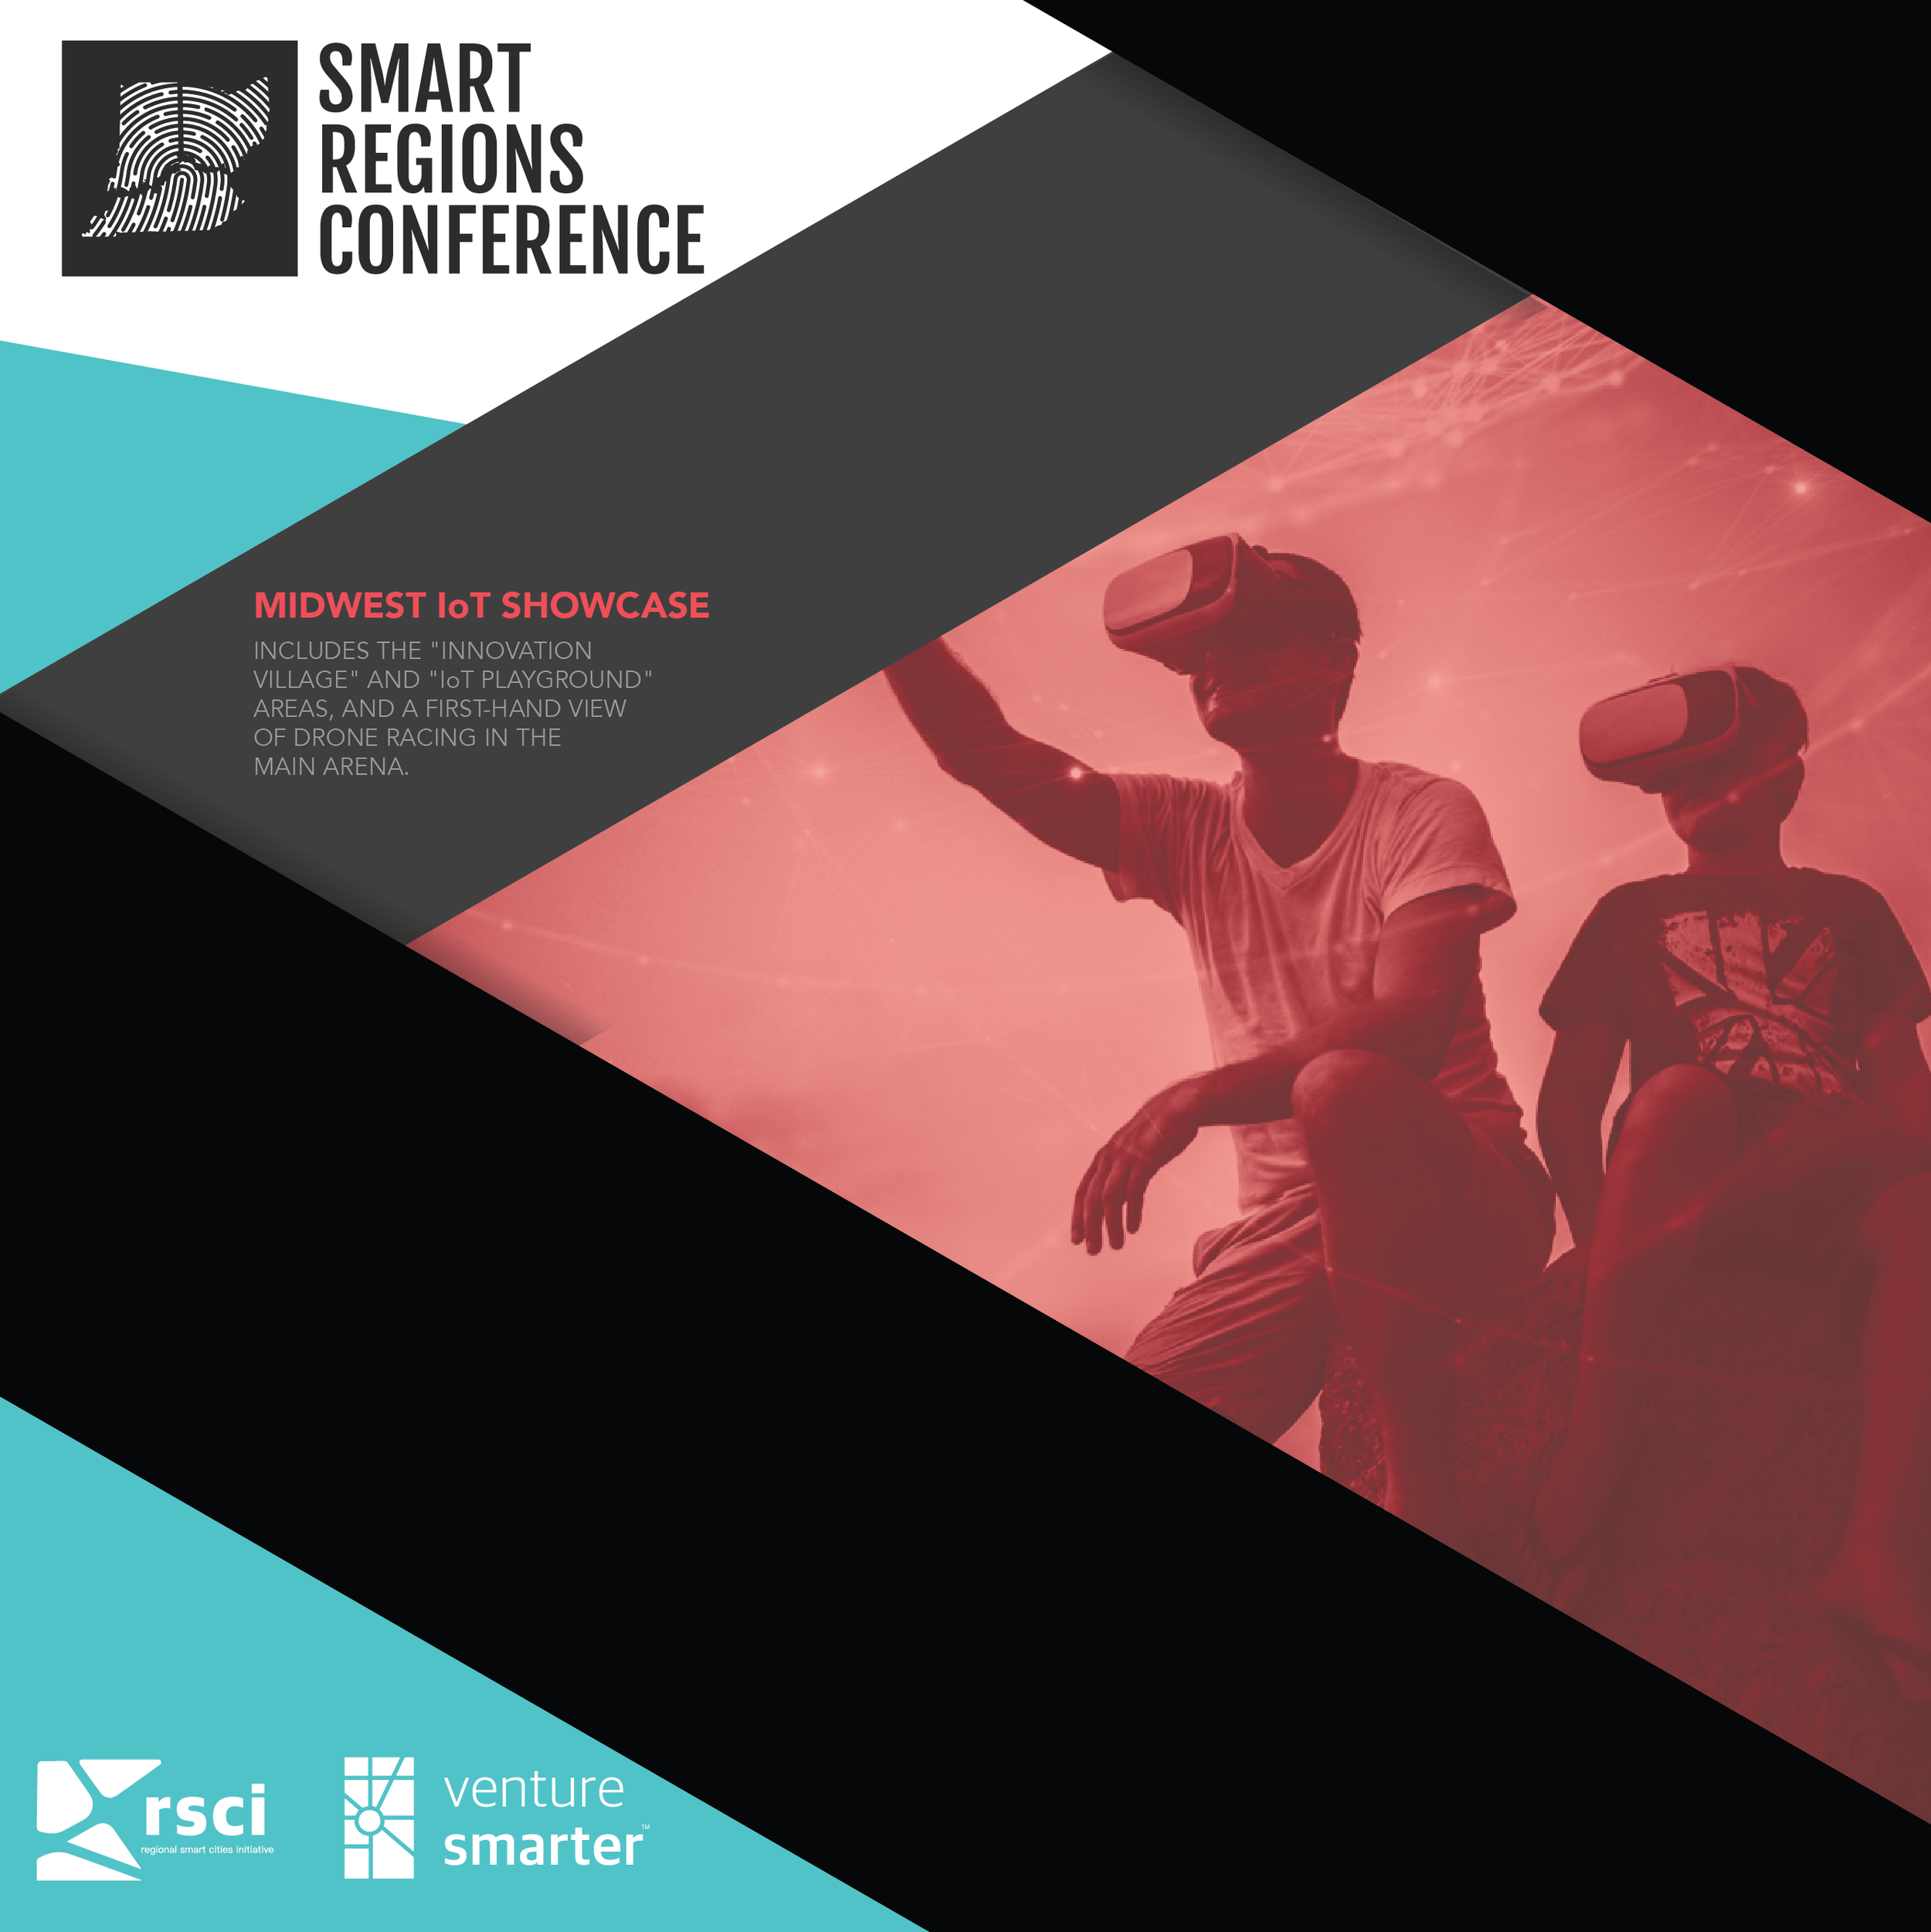 SmartRegionsConference-SocialPosts-MidwestIoT.png